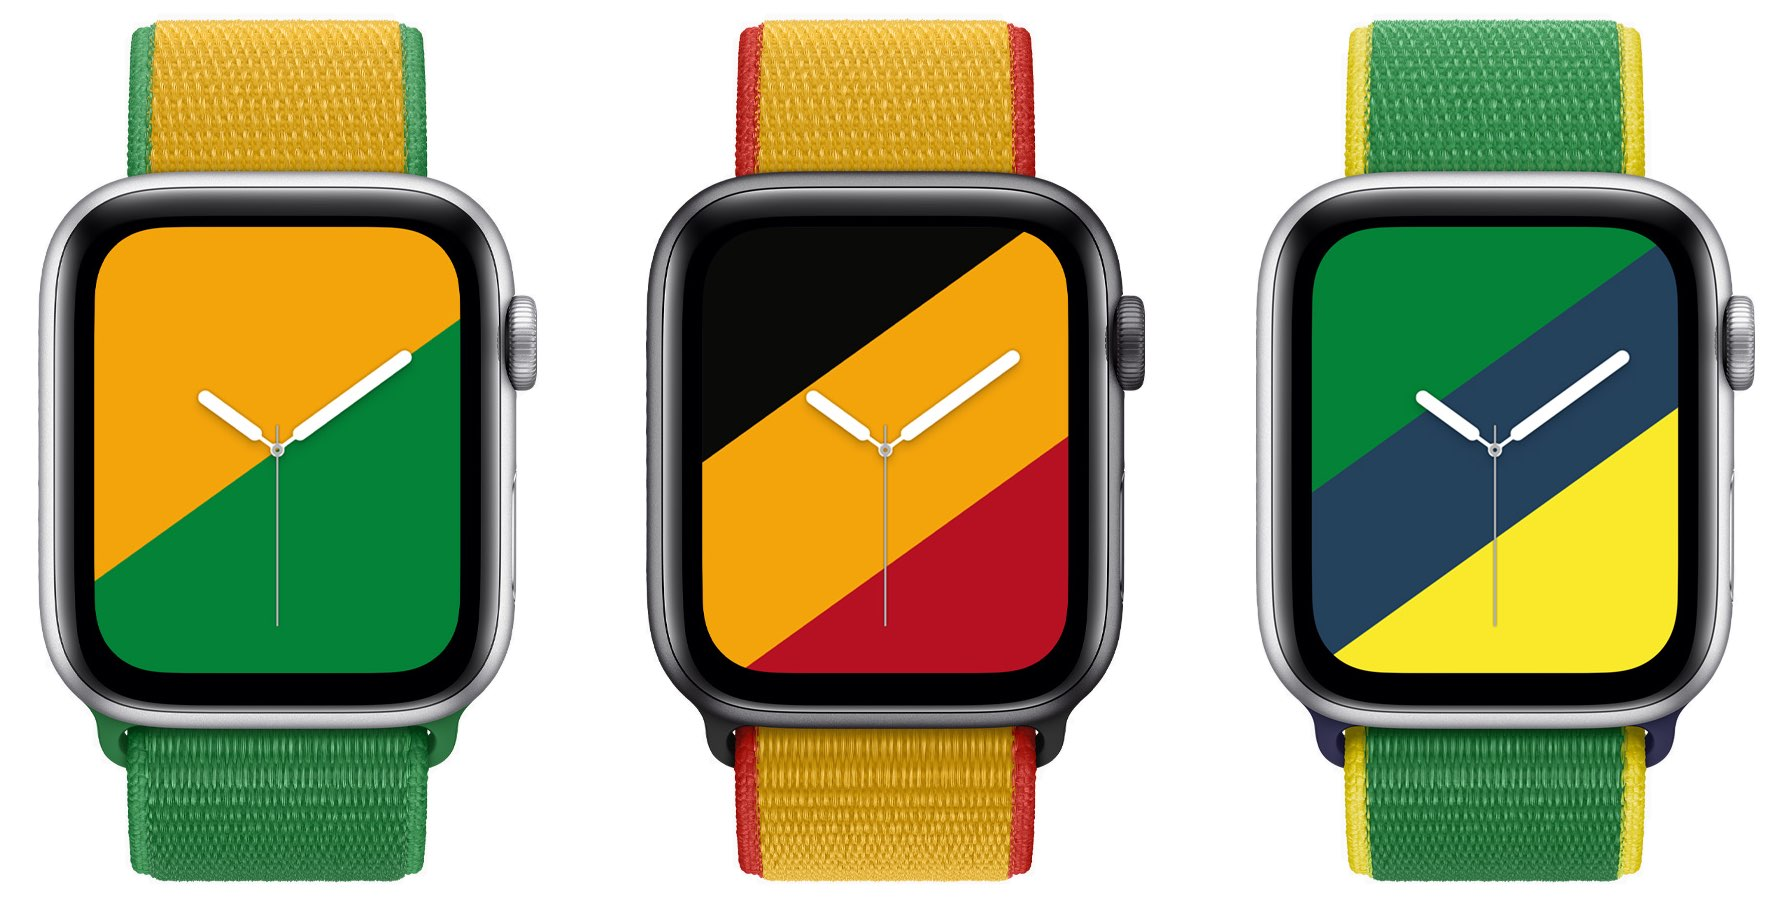 A promotional image provided by Apple showing a new International Collection bands for Australia, Belgium and Brazil on Apple Watch